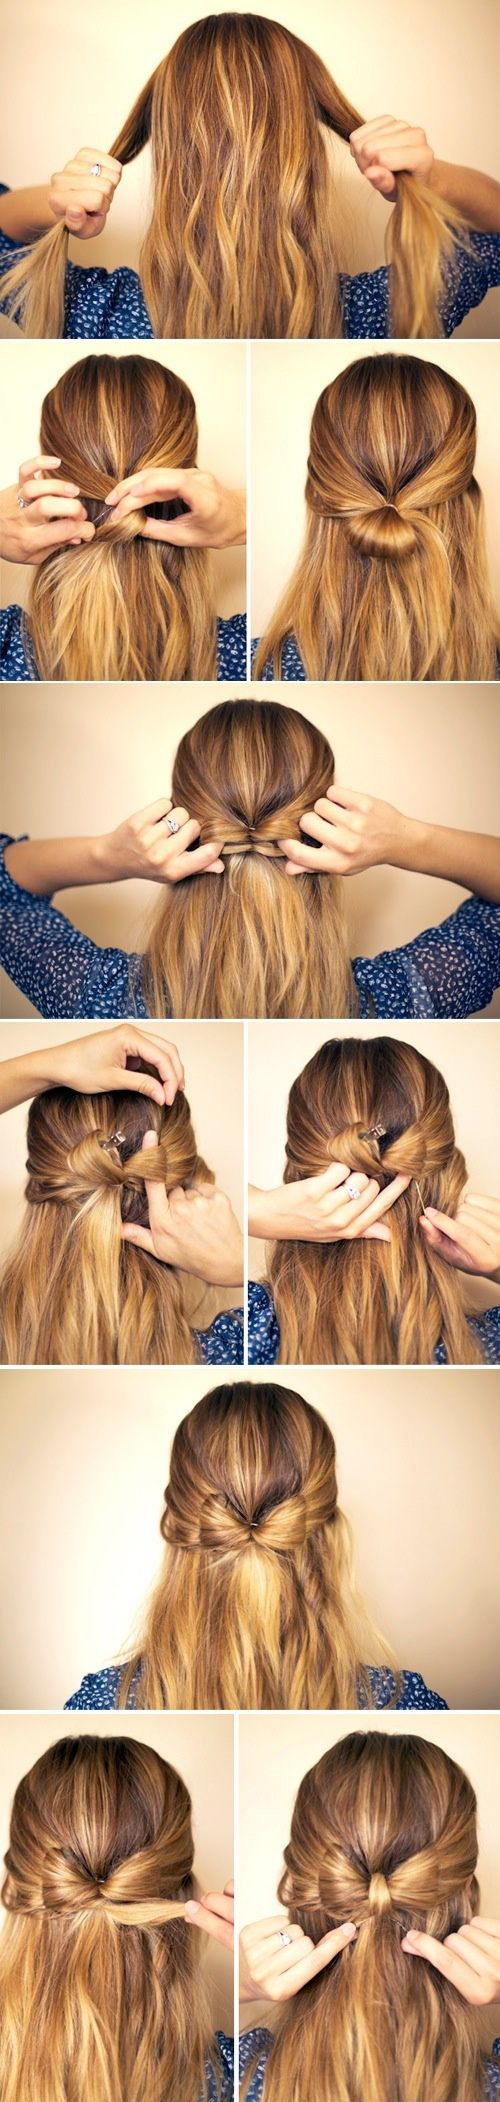 Adorable and Easy Hairbow Tutorial [PHOTOS]   Ryan Seacrest - The official music and entertainment news site of American Idol host and American Top 40 on air radio personality!